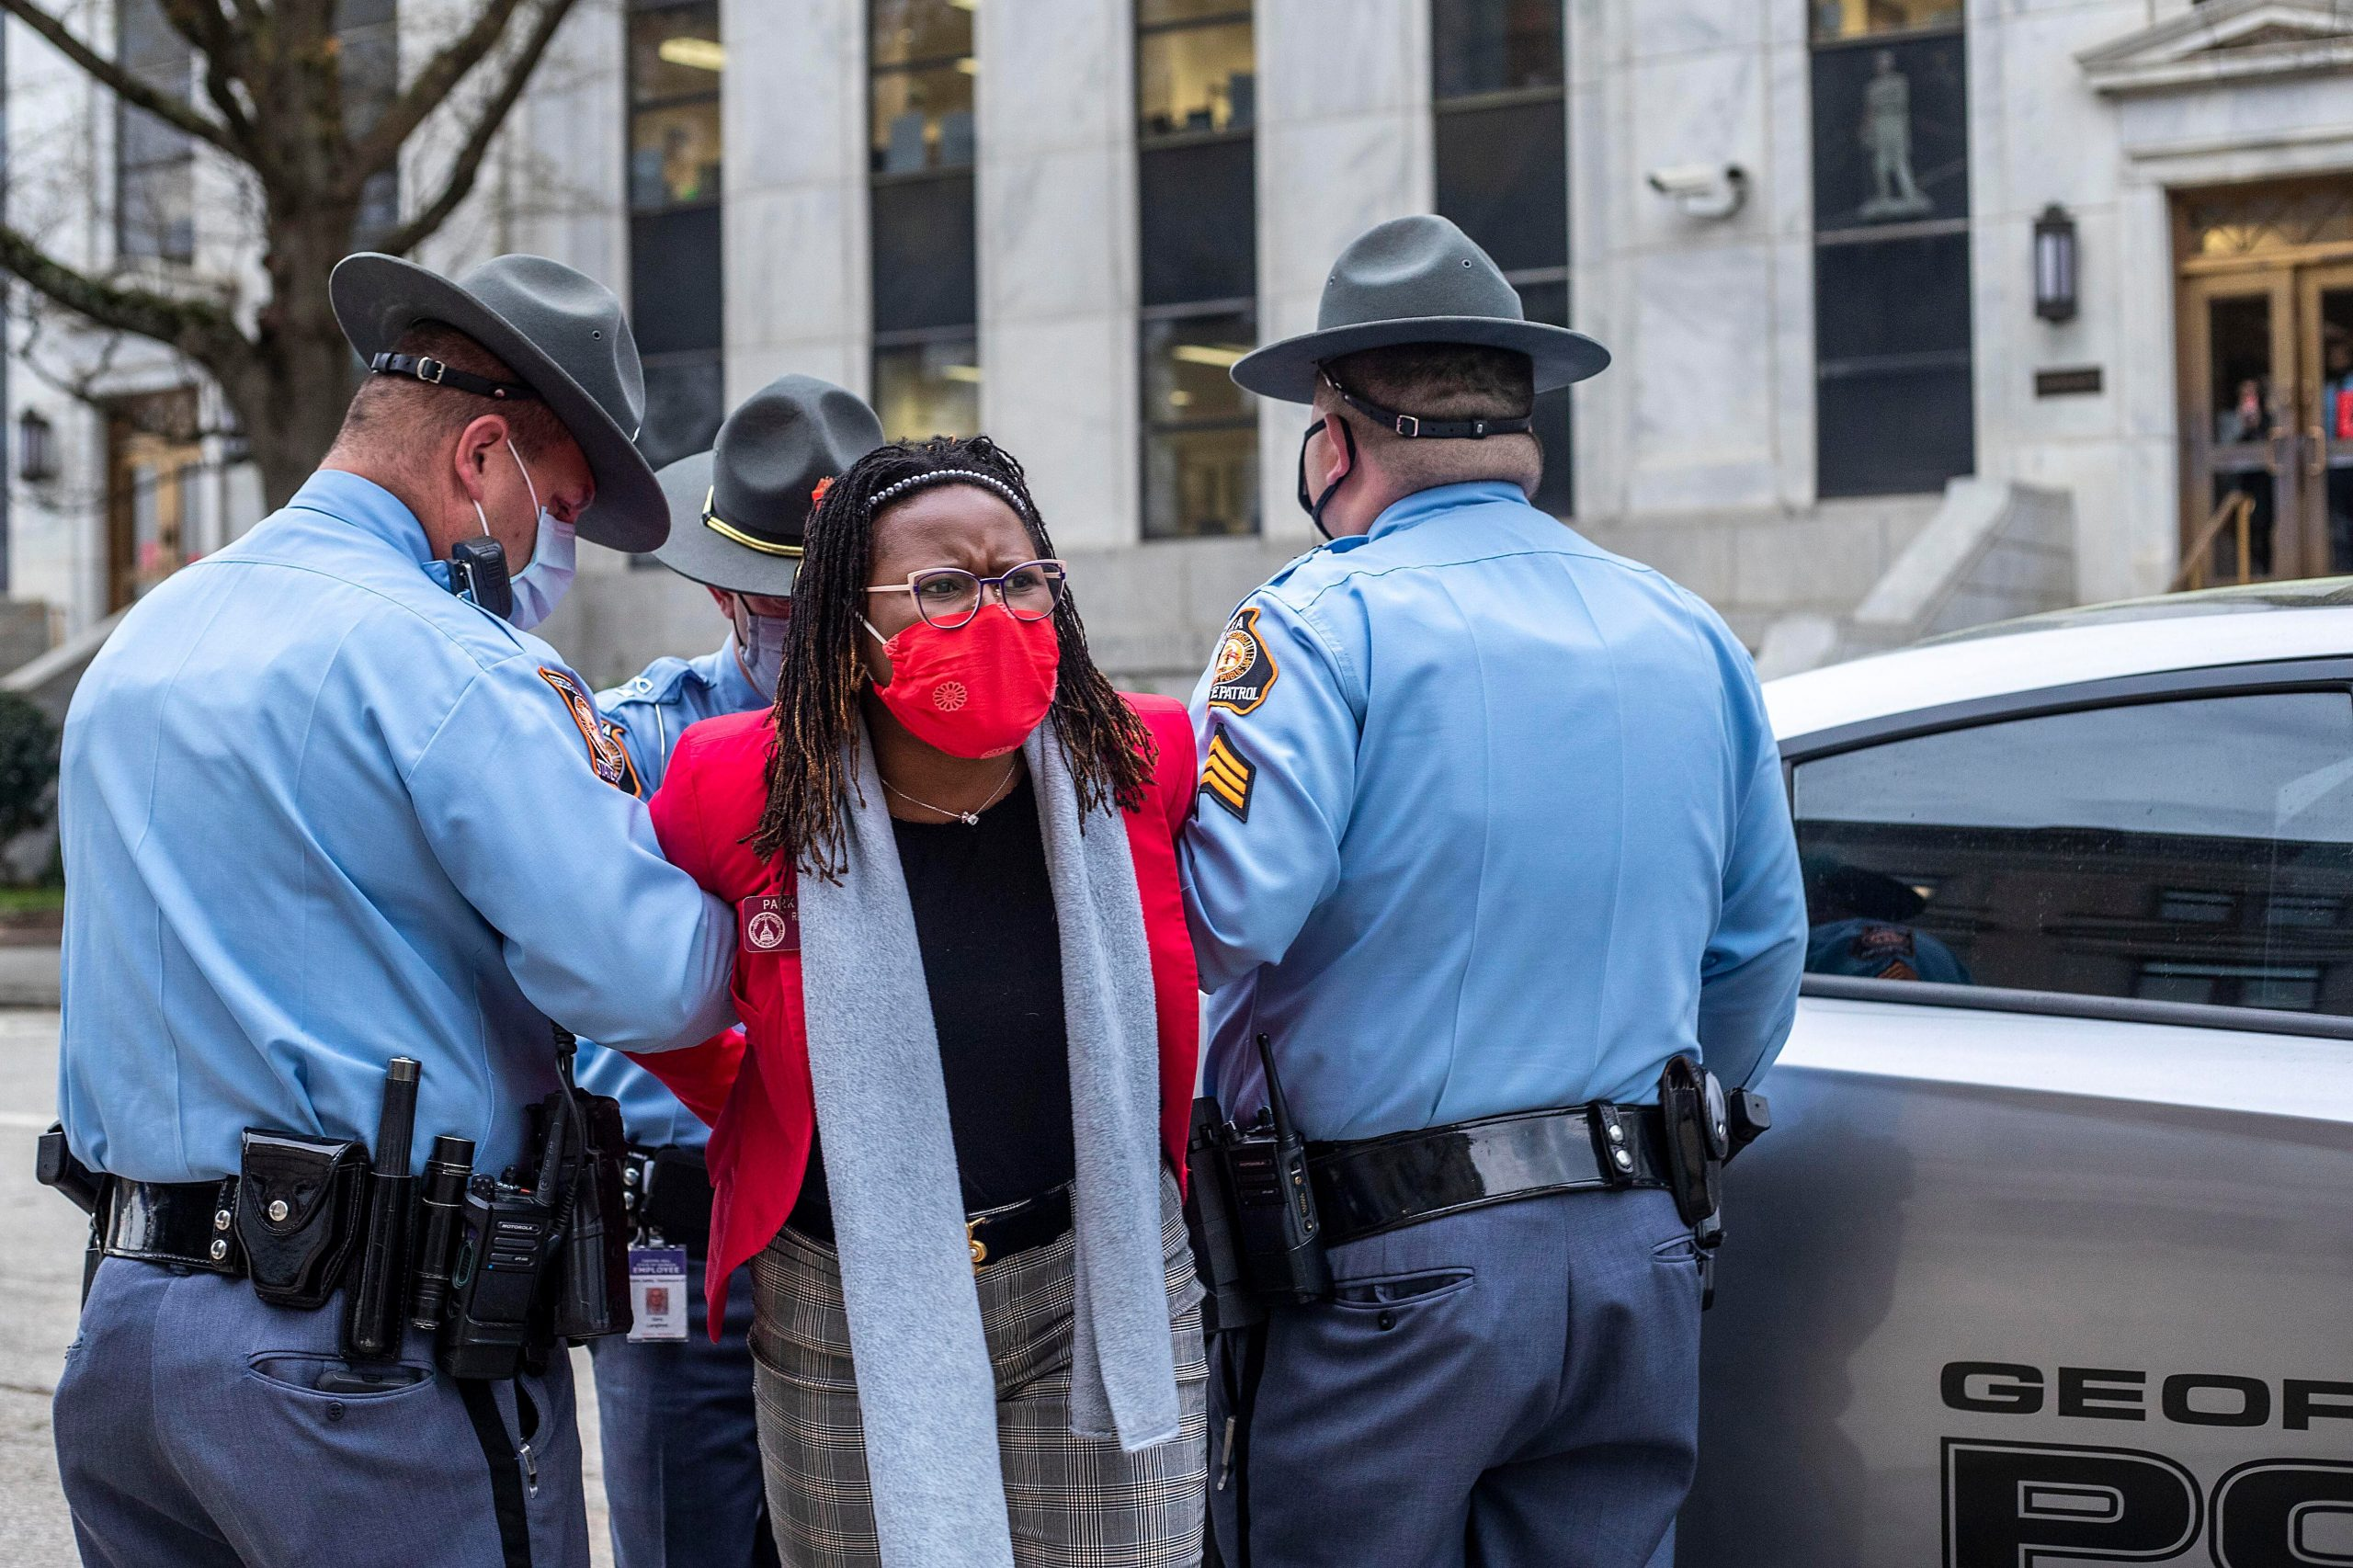 03/25/2021 —Atlanta, Georgia — Rep. Park Cannon (D-Atlanta) is placed into the back of a Georgia State Capitol patrol car after being arrested by Georgia State Troopers on day 38 of the legislative session at the Georgia State Capitol Building in Atlanta, Thursday, March 25, 2021. (Alyssa Pointer / Alyssa.Pointer@ajc.com)